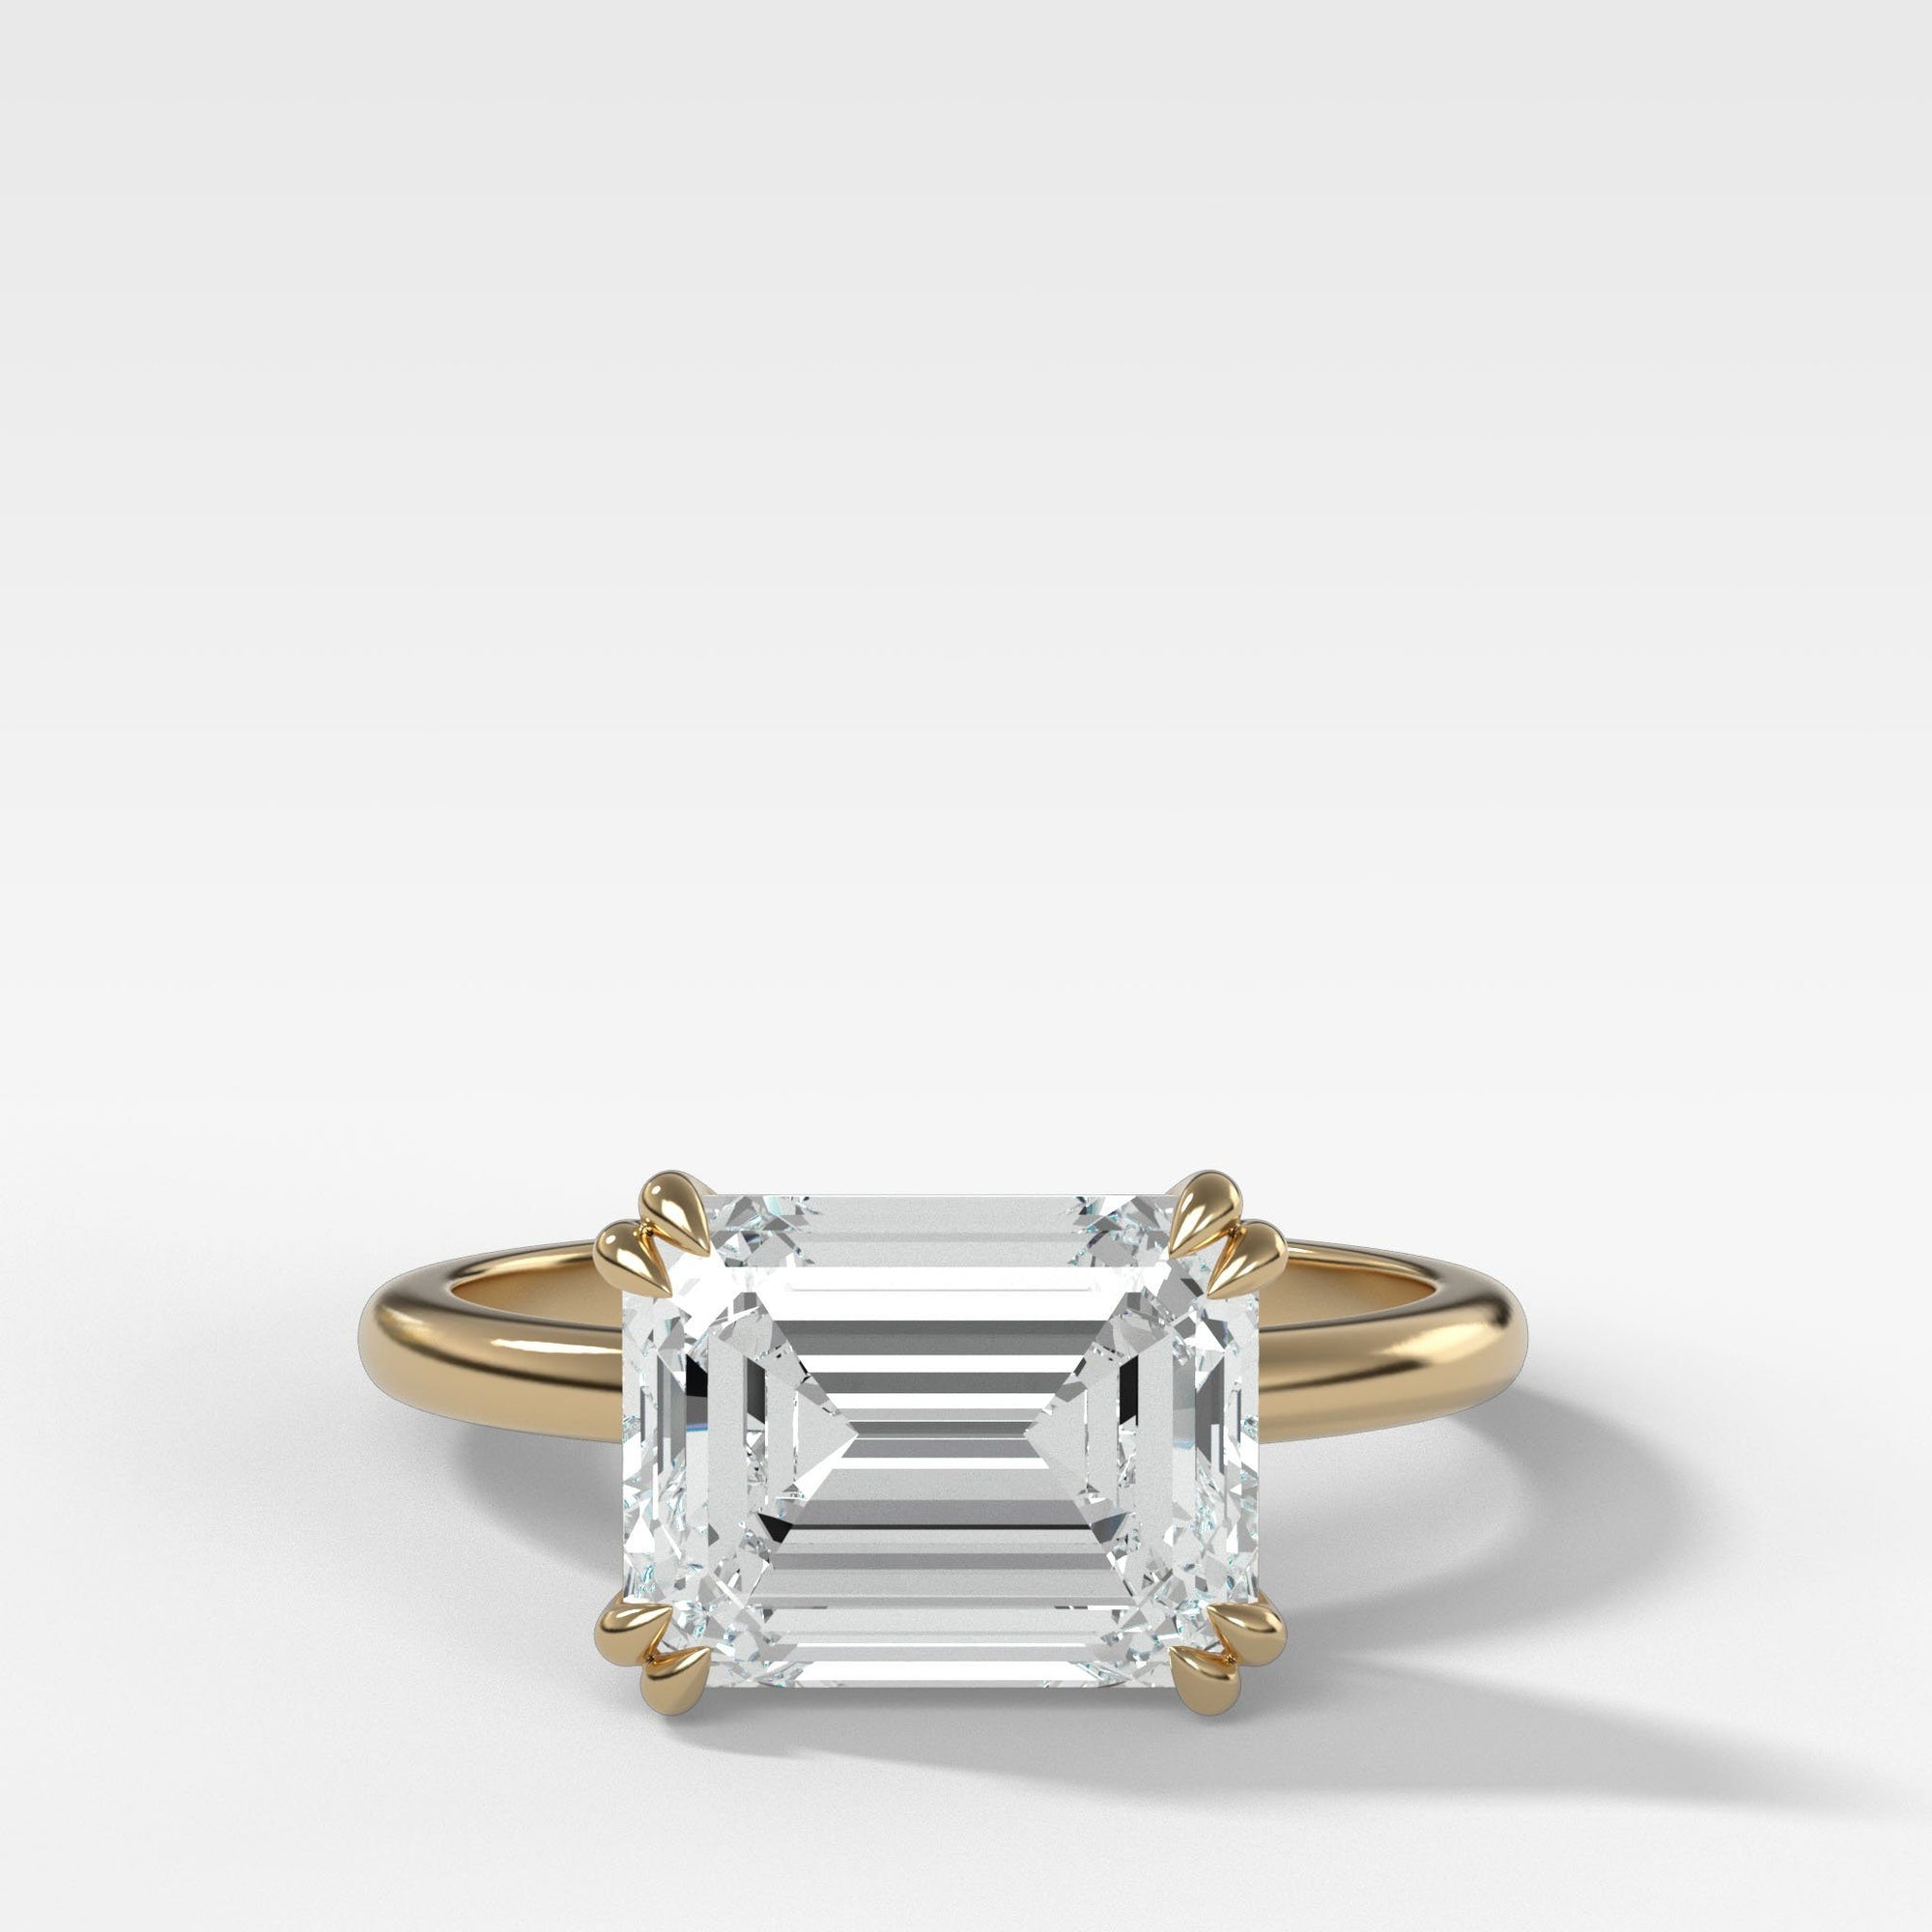 Signature Cathedral Solitaire With Emerald Cut (East West) in Yellow Gold by Good Stone